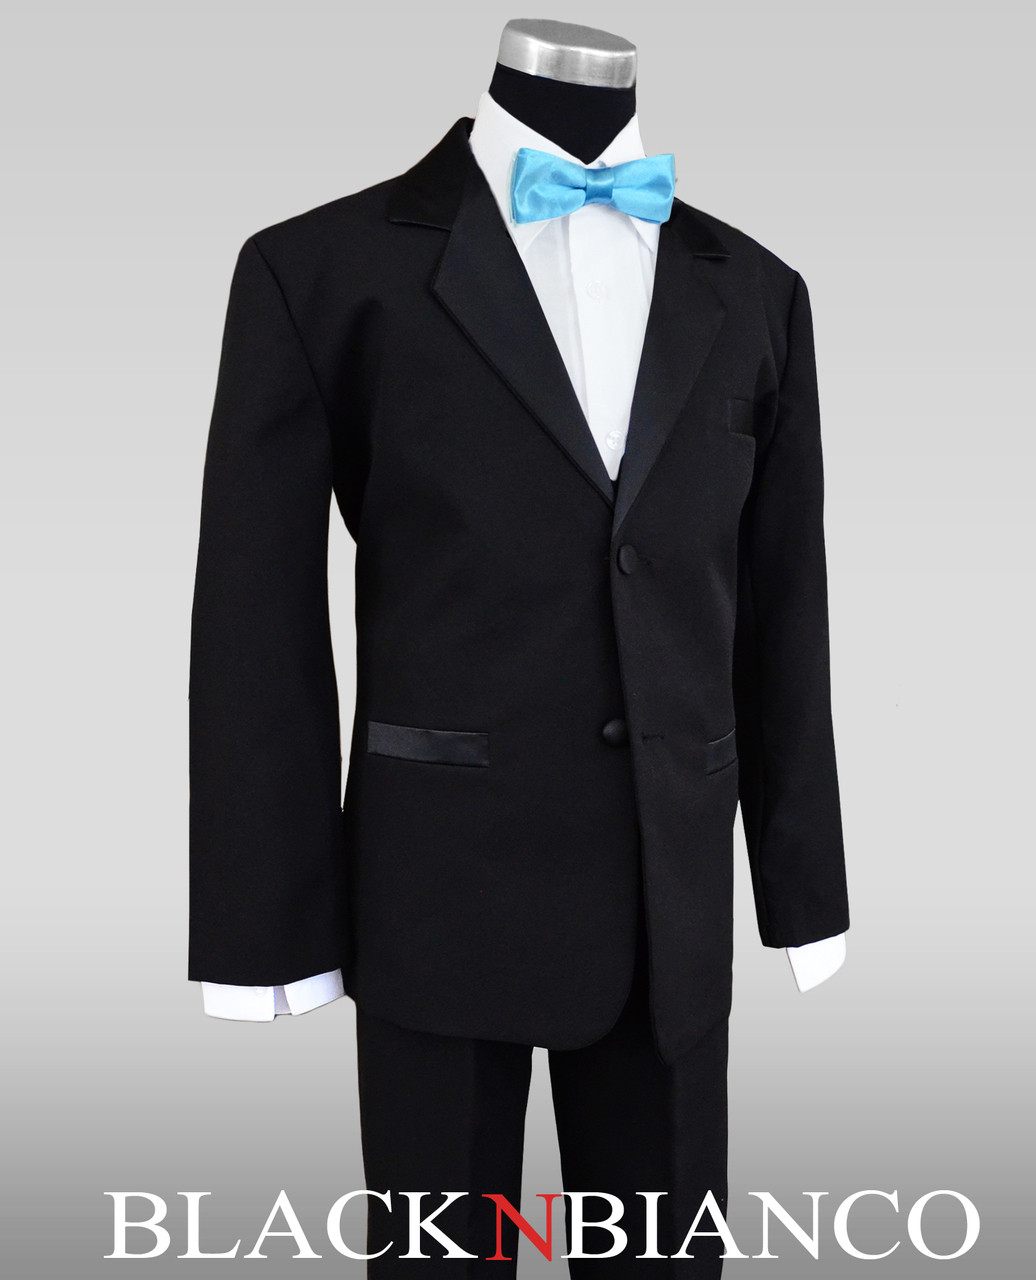 c851b547808 Boys Black Tuxedo with Baby Blue Batwing Bow Tie